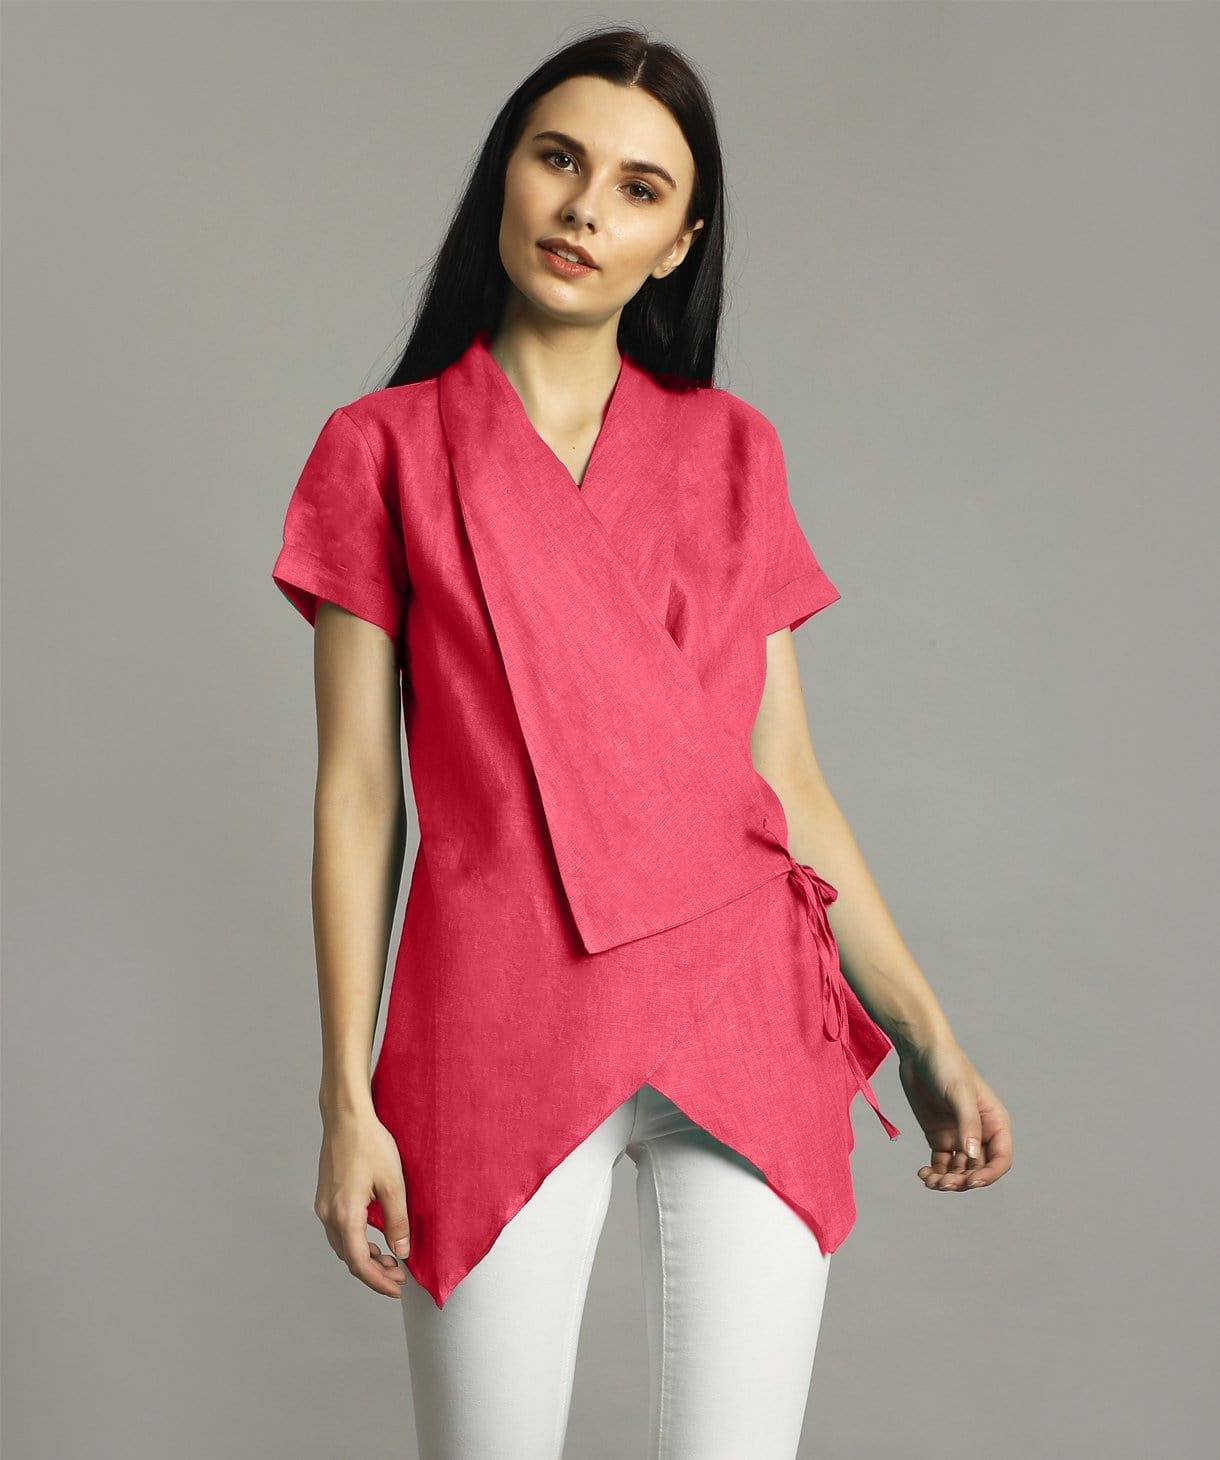 Uptownie Plus Hot Pink Linen Wrap Shrug. FLAT 200 OFF